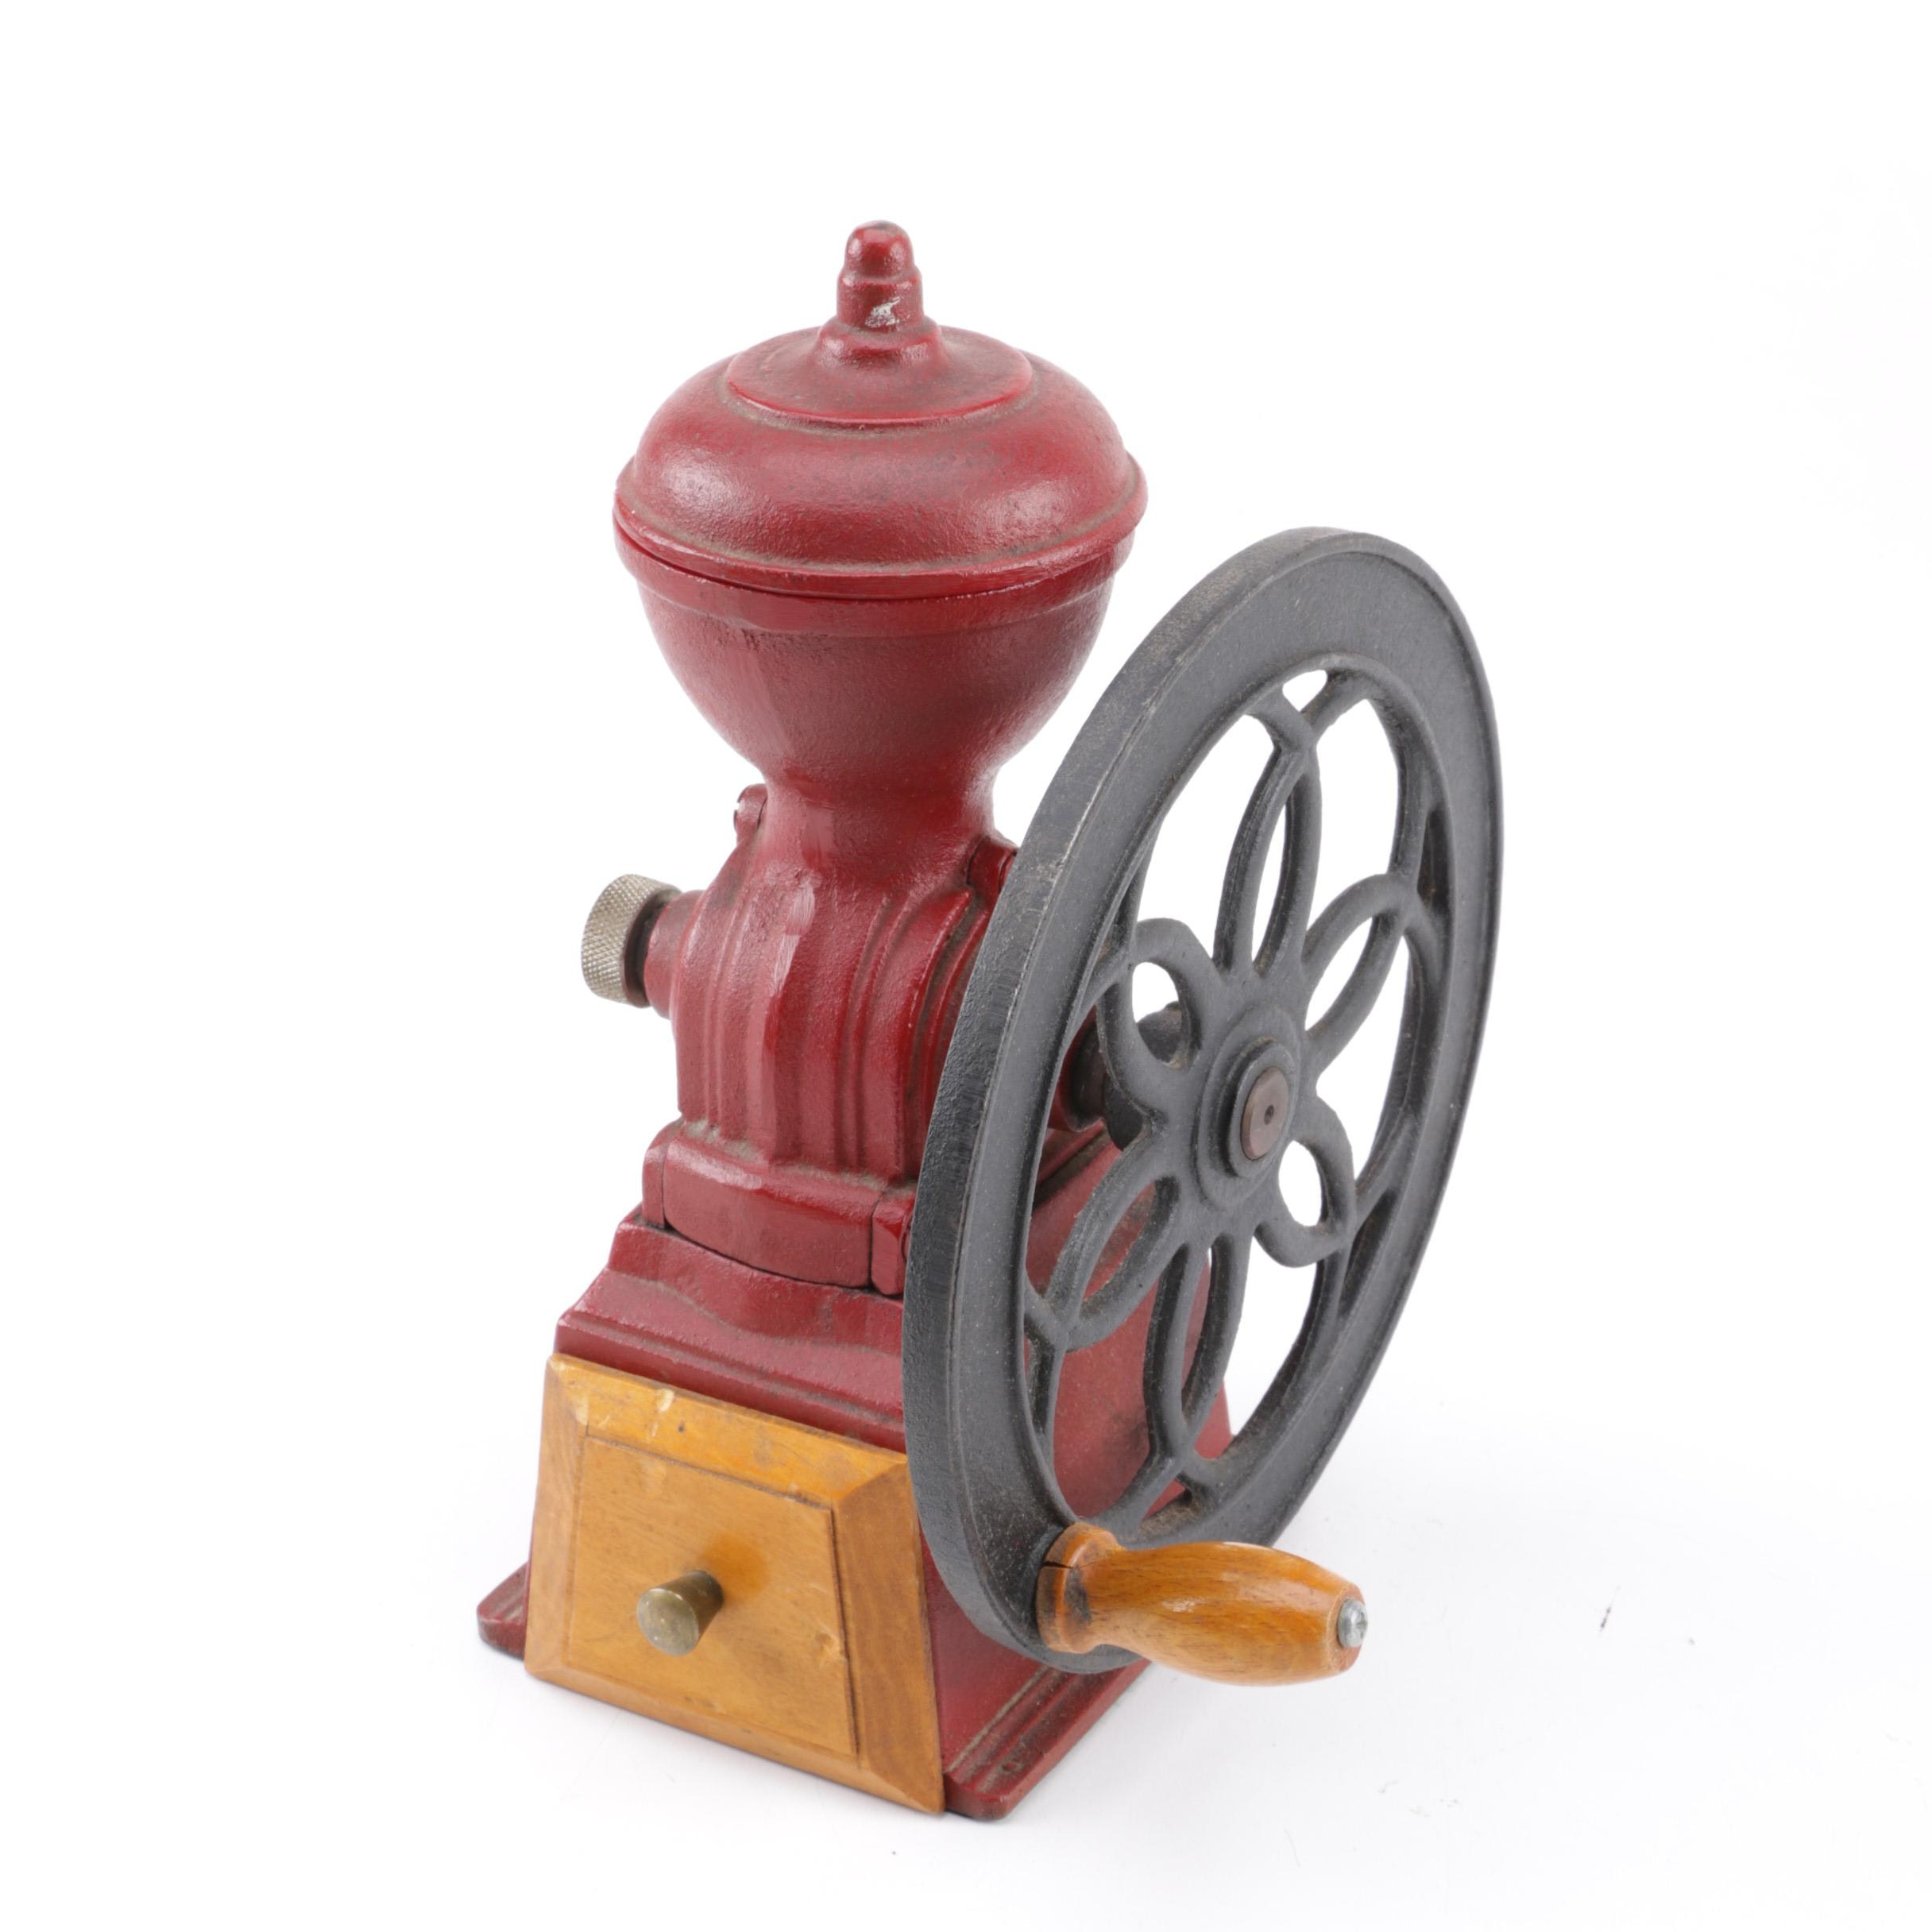 Vintage Cast Iron Coffee Grinder